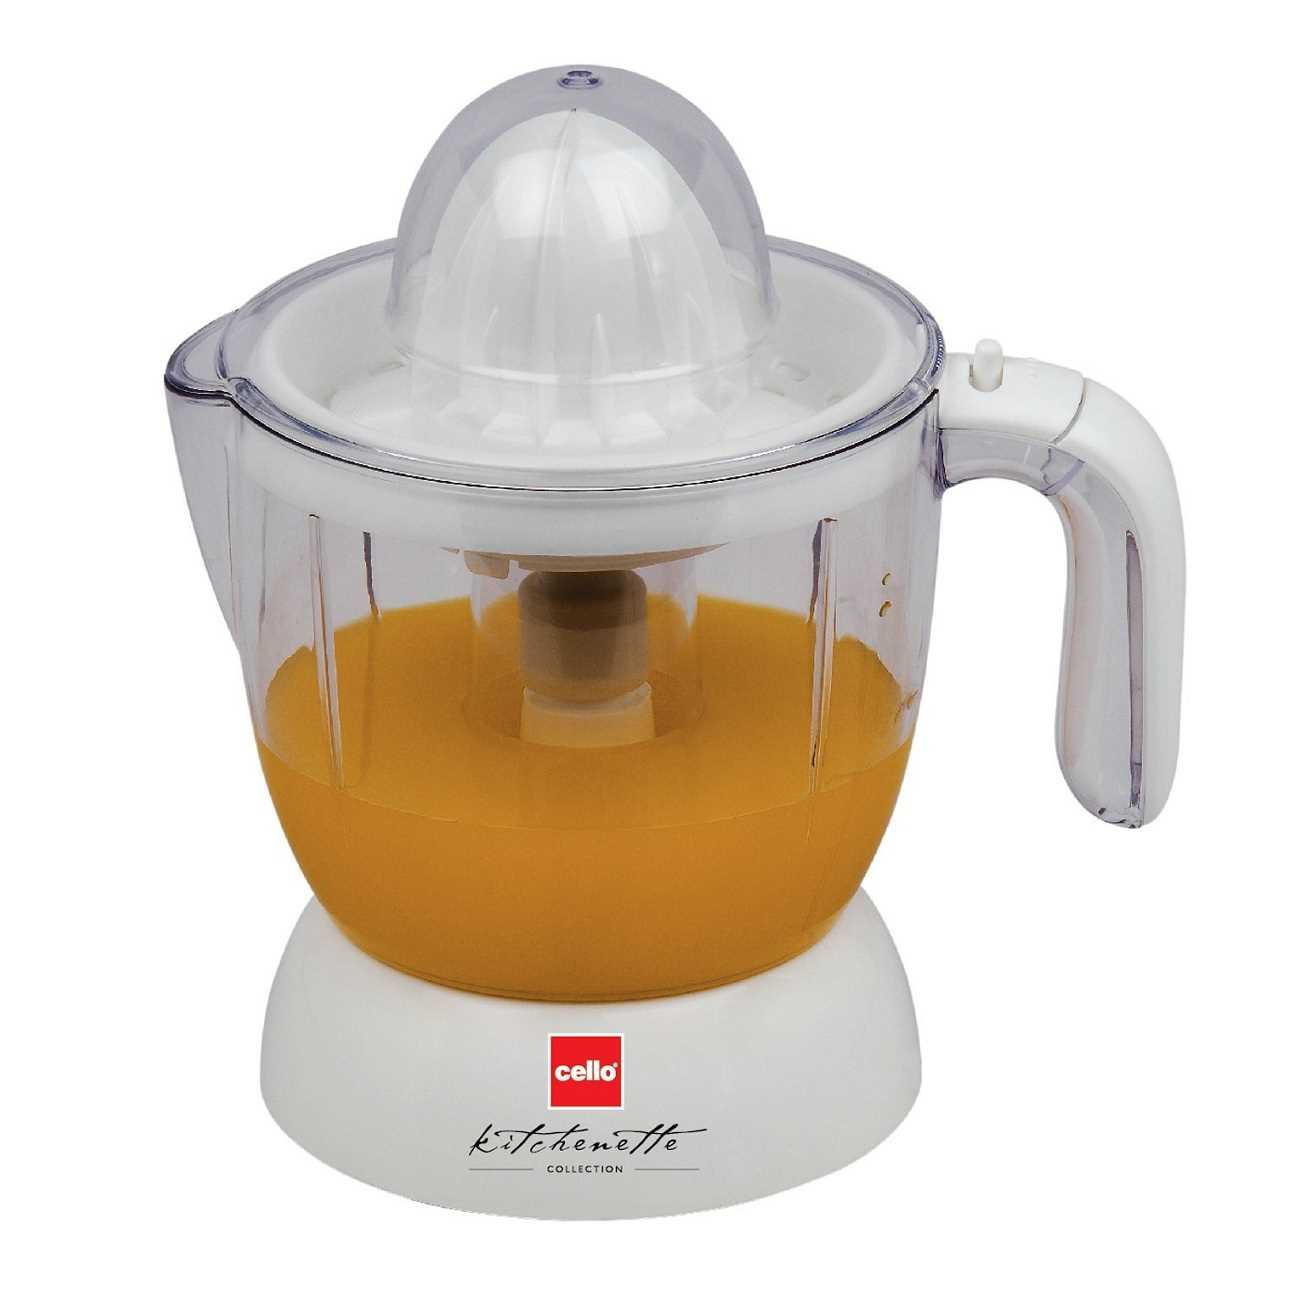 Cello Squash-N-Squeeze 100 30 W Juicer